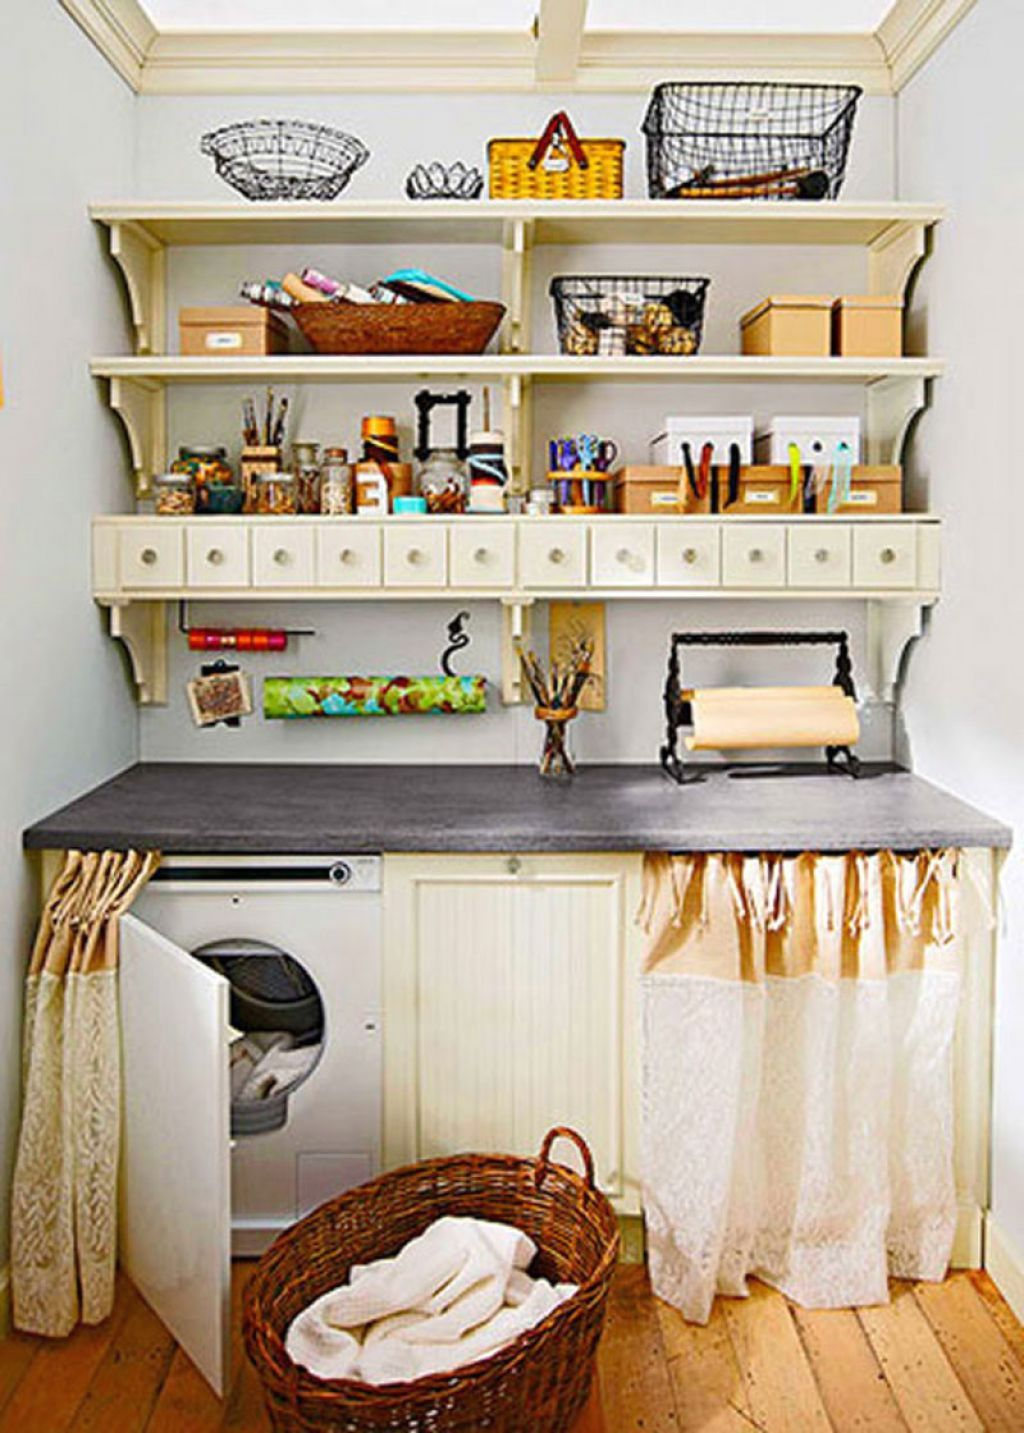 For Kitchen Storage In Small Kitchen Small Kitchen And Small Laundry Room Storage Solutions